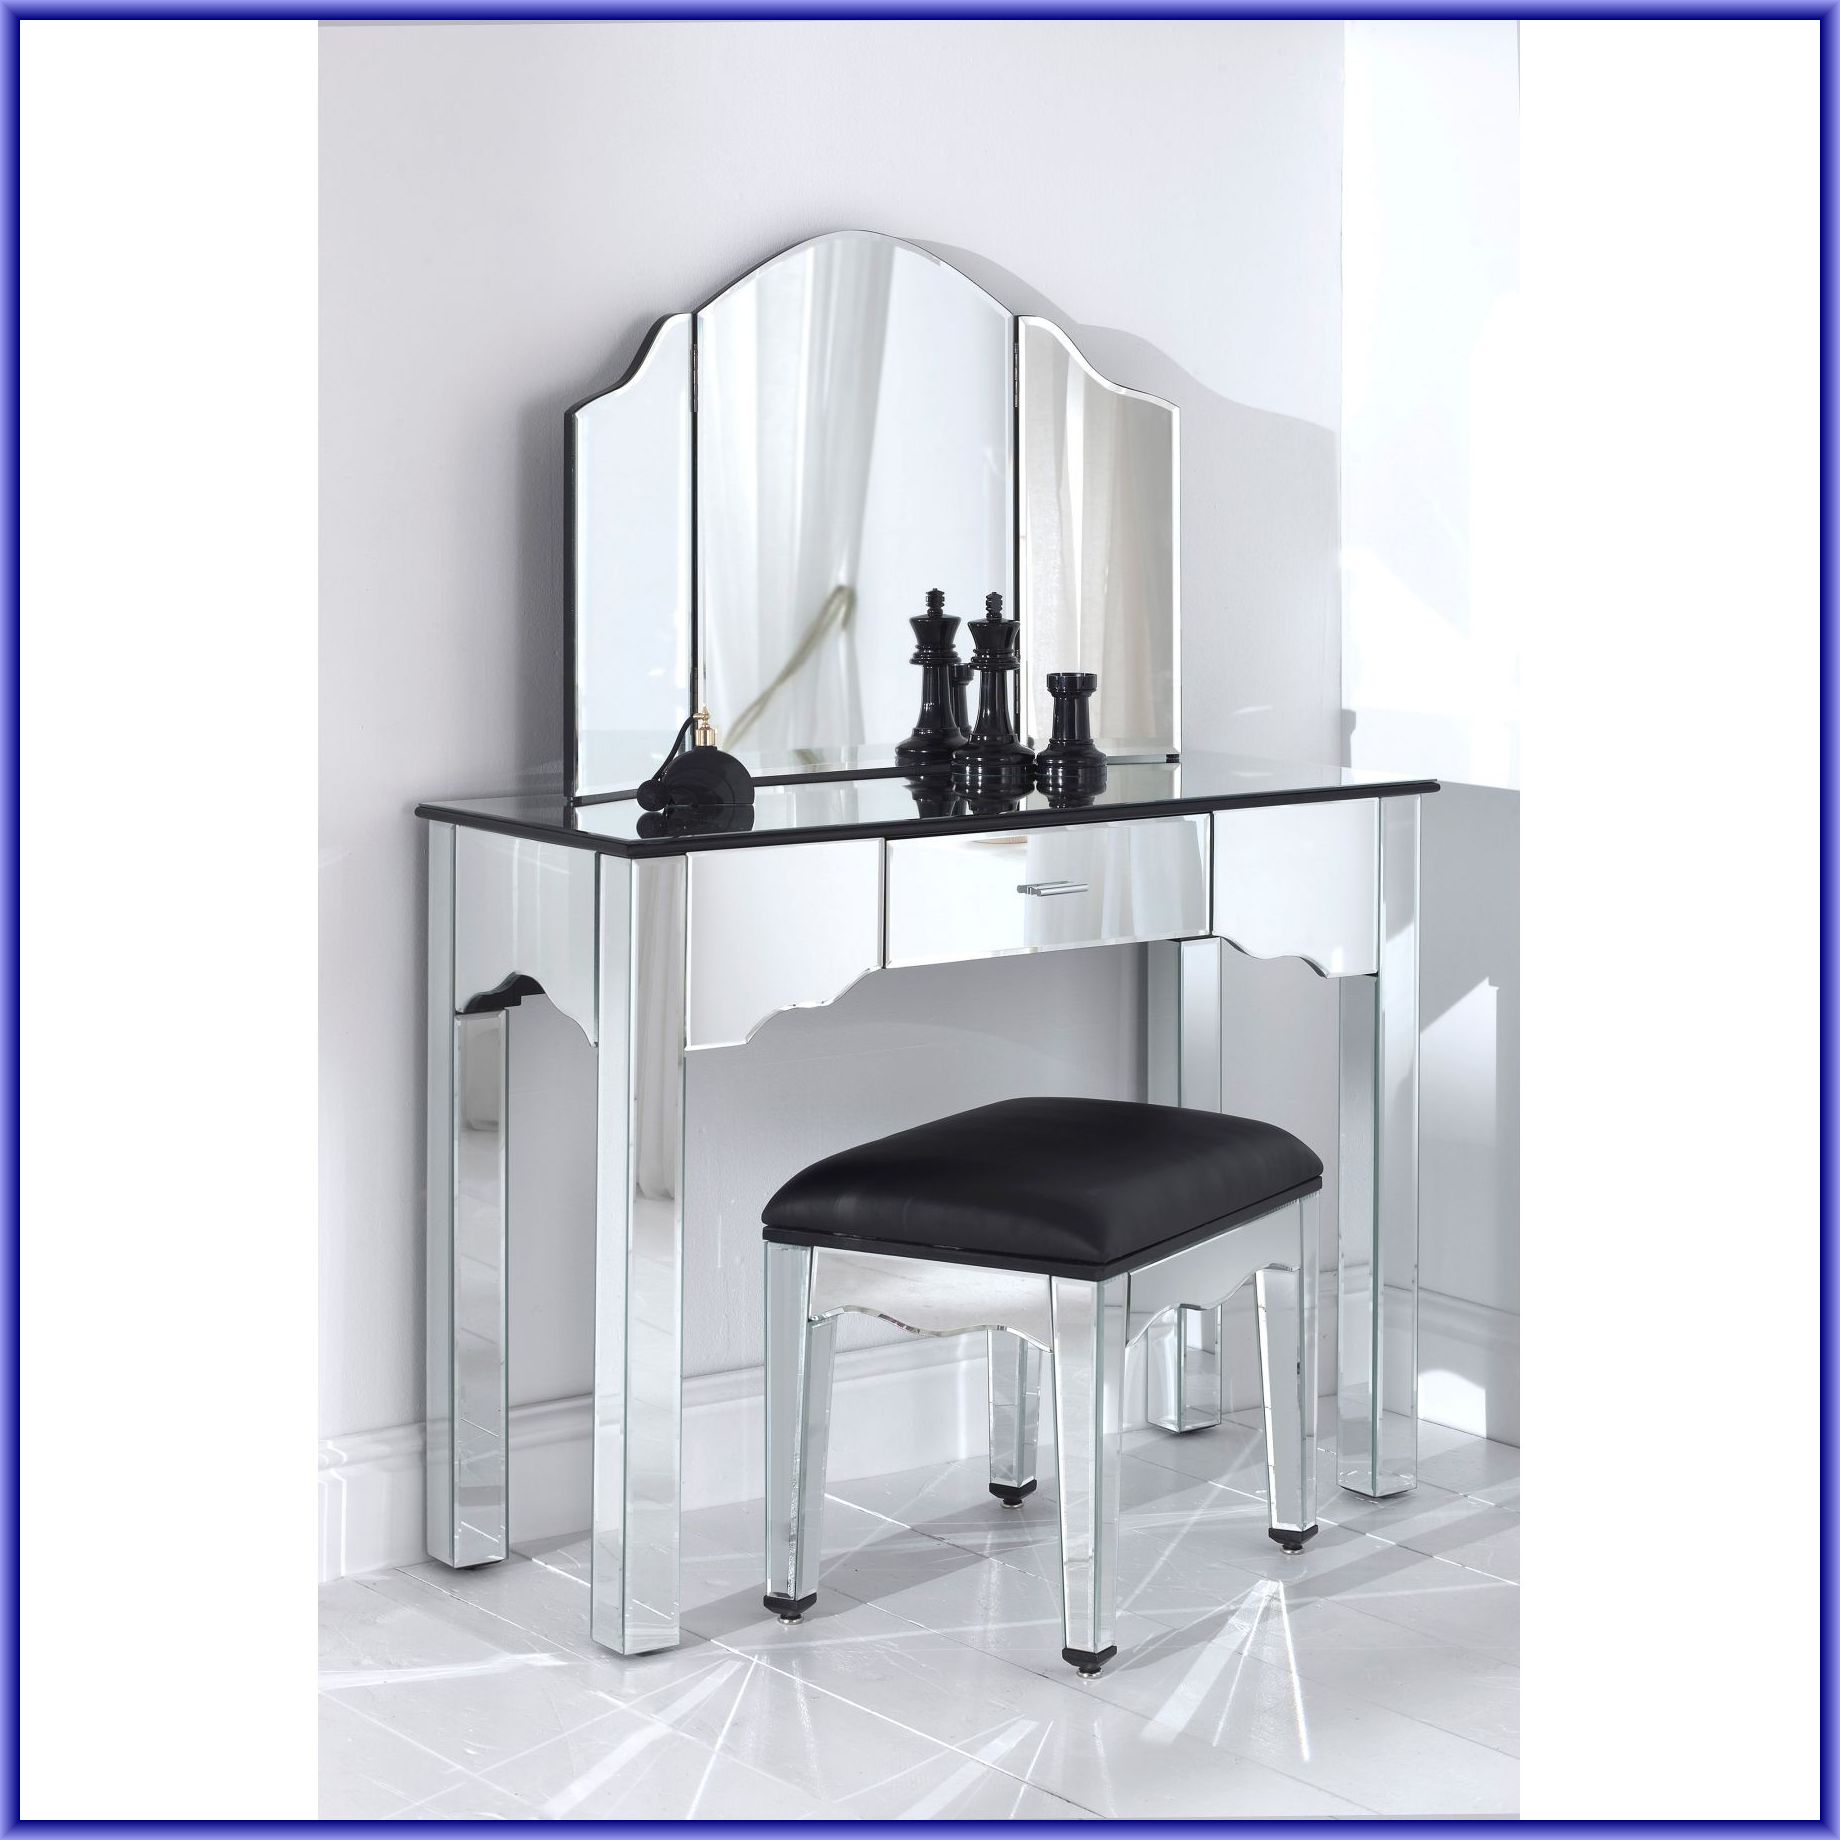 Fantastic mirrored vanity for home furniture and vanity mirror with lights